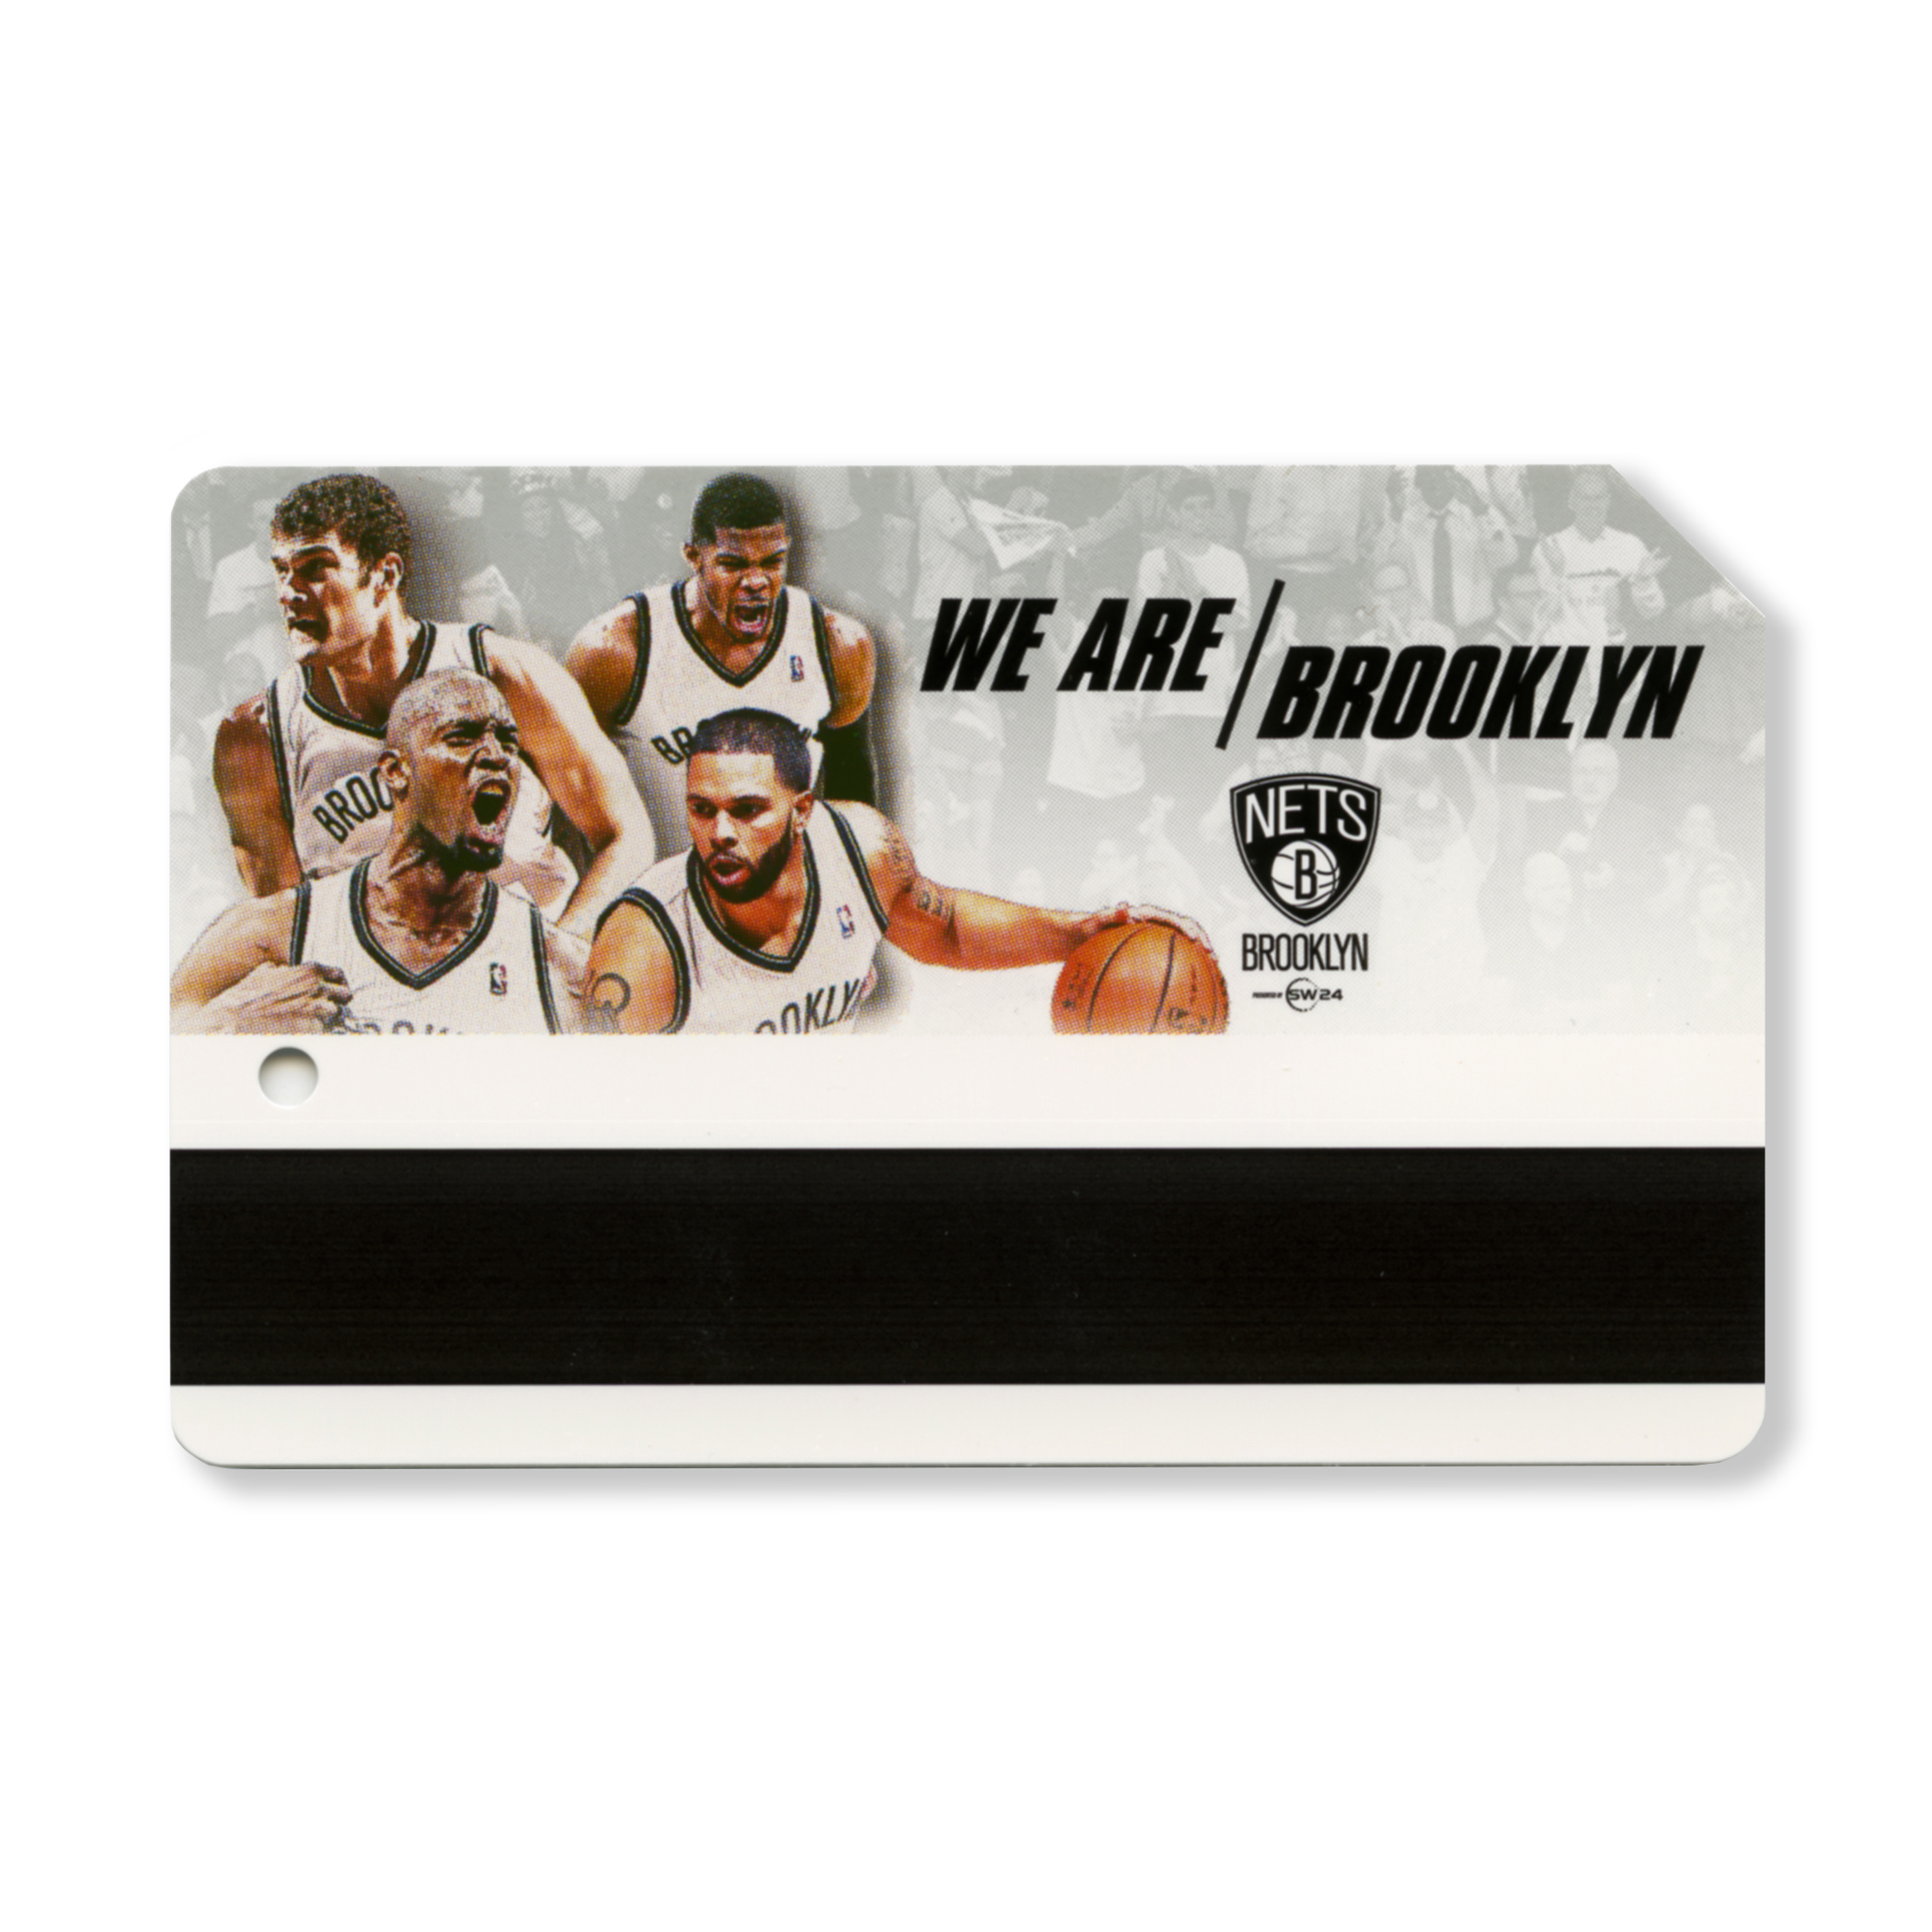 the_nycta_project_2014_brooklyn_nets_metrocard_we_are_brooklyn.jpg